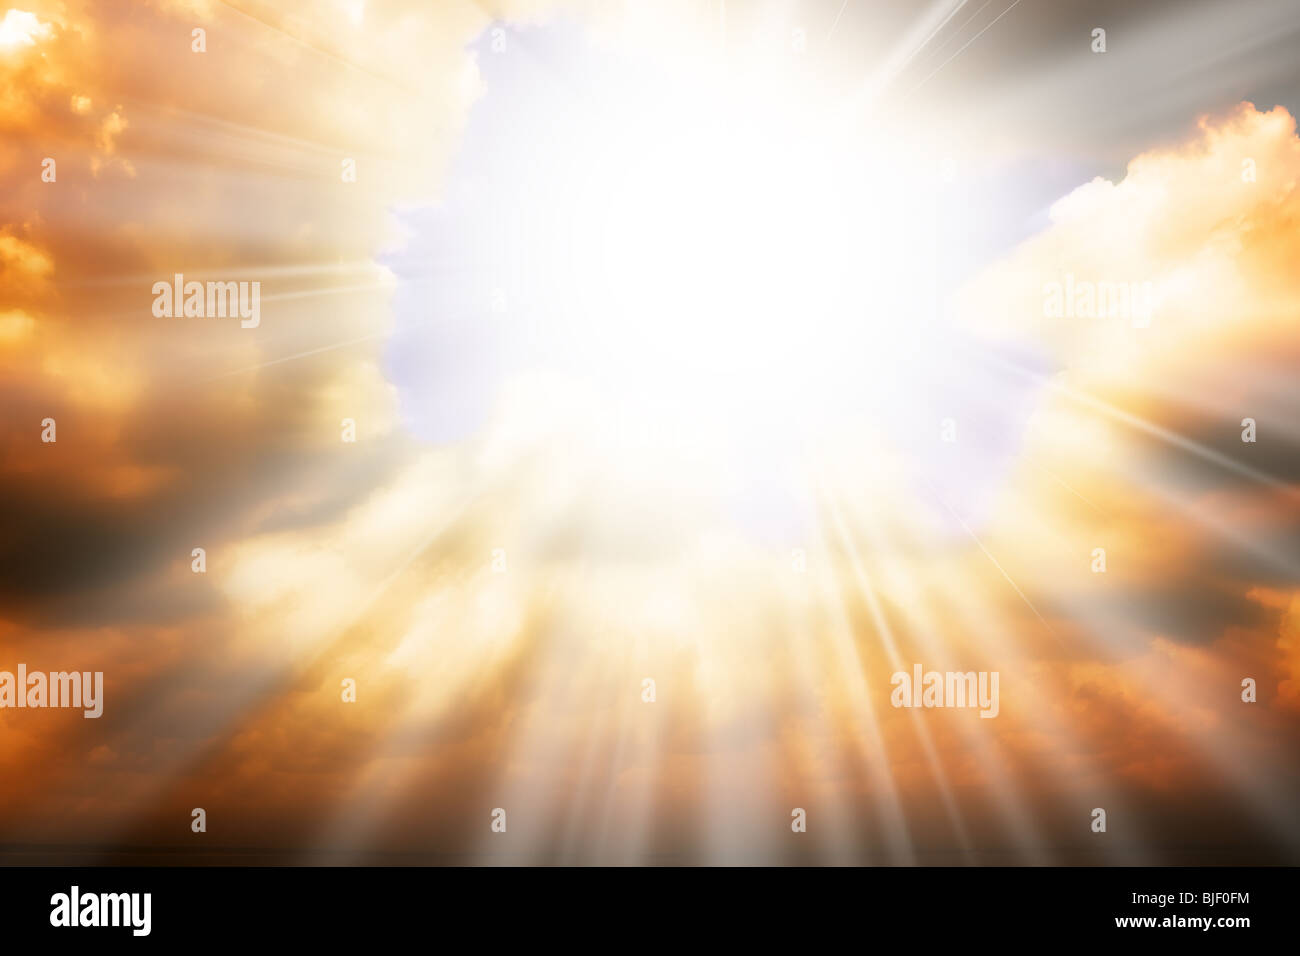 Heaven sky background with sun light and clouds - Stock Image